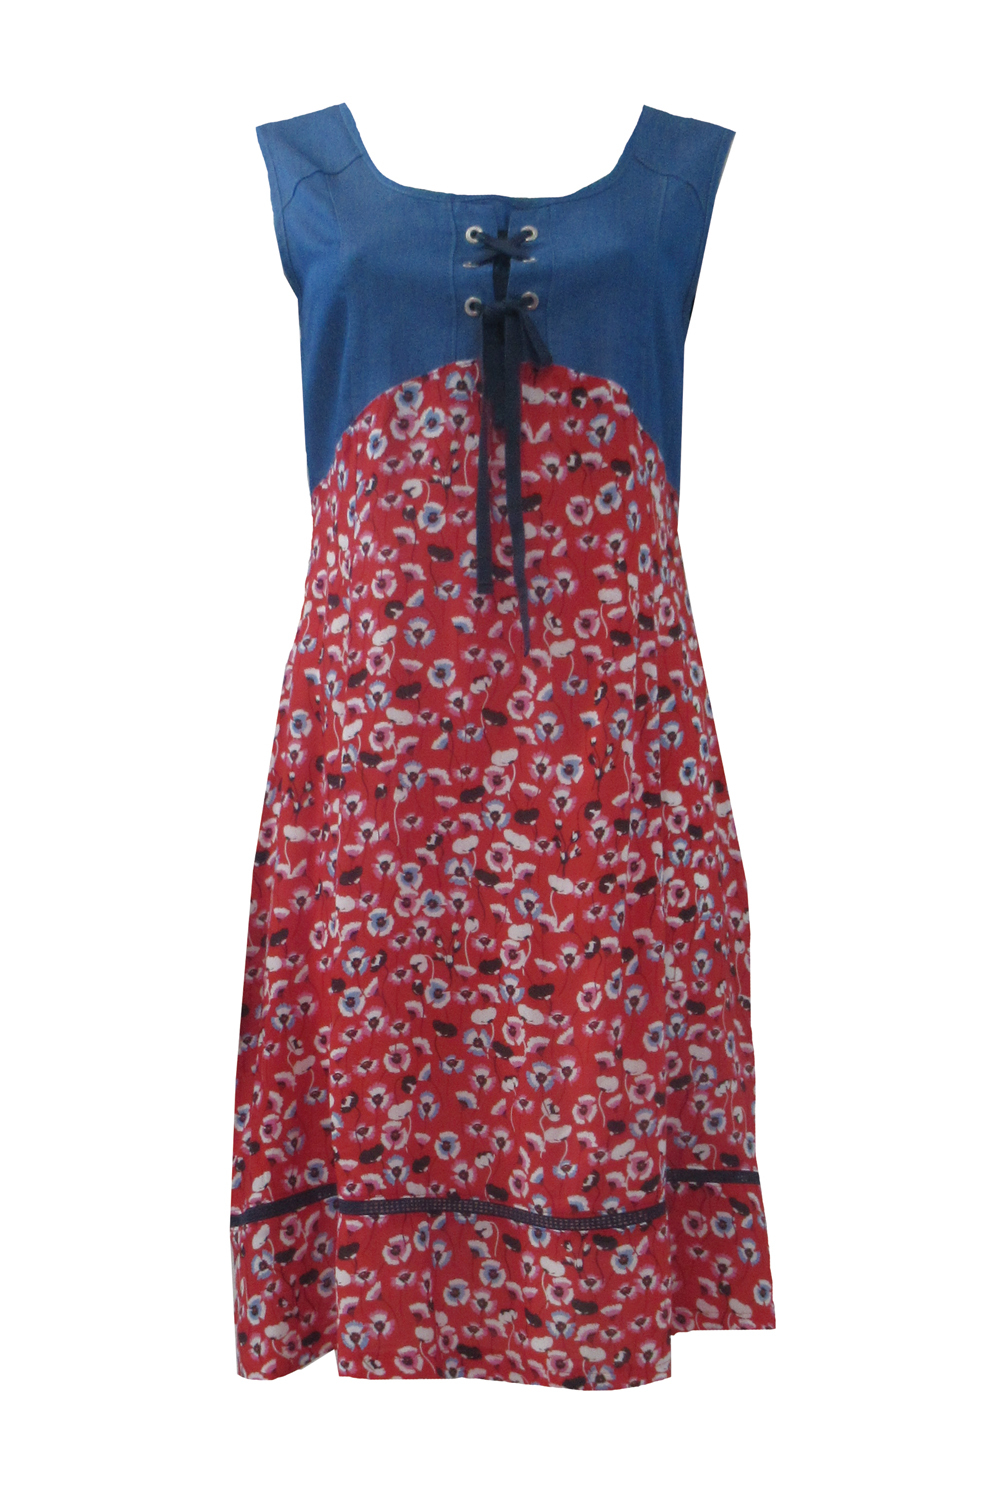 Maloka: Tied Bodice High Waisted Blooming Dress (2 Left!)